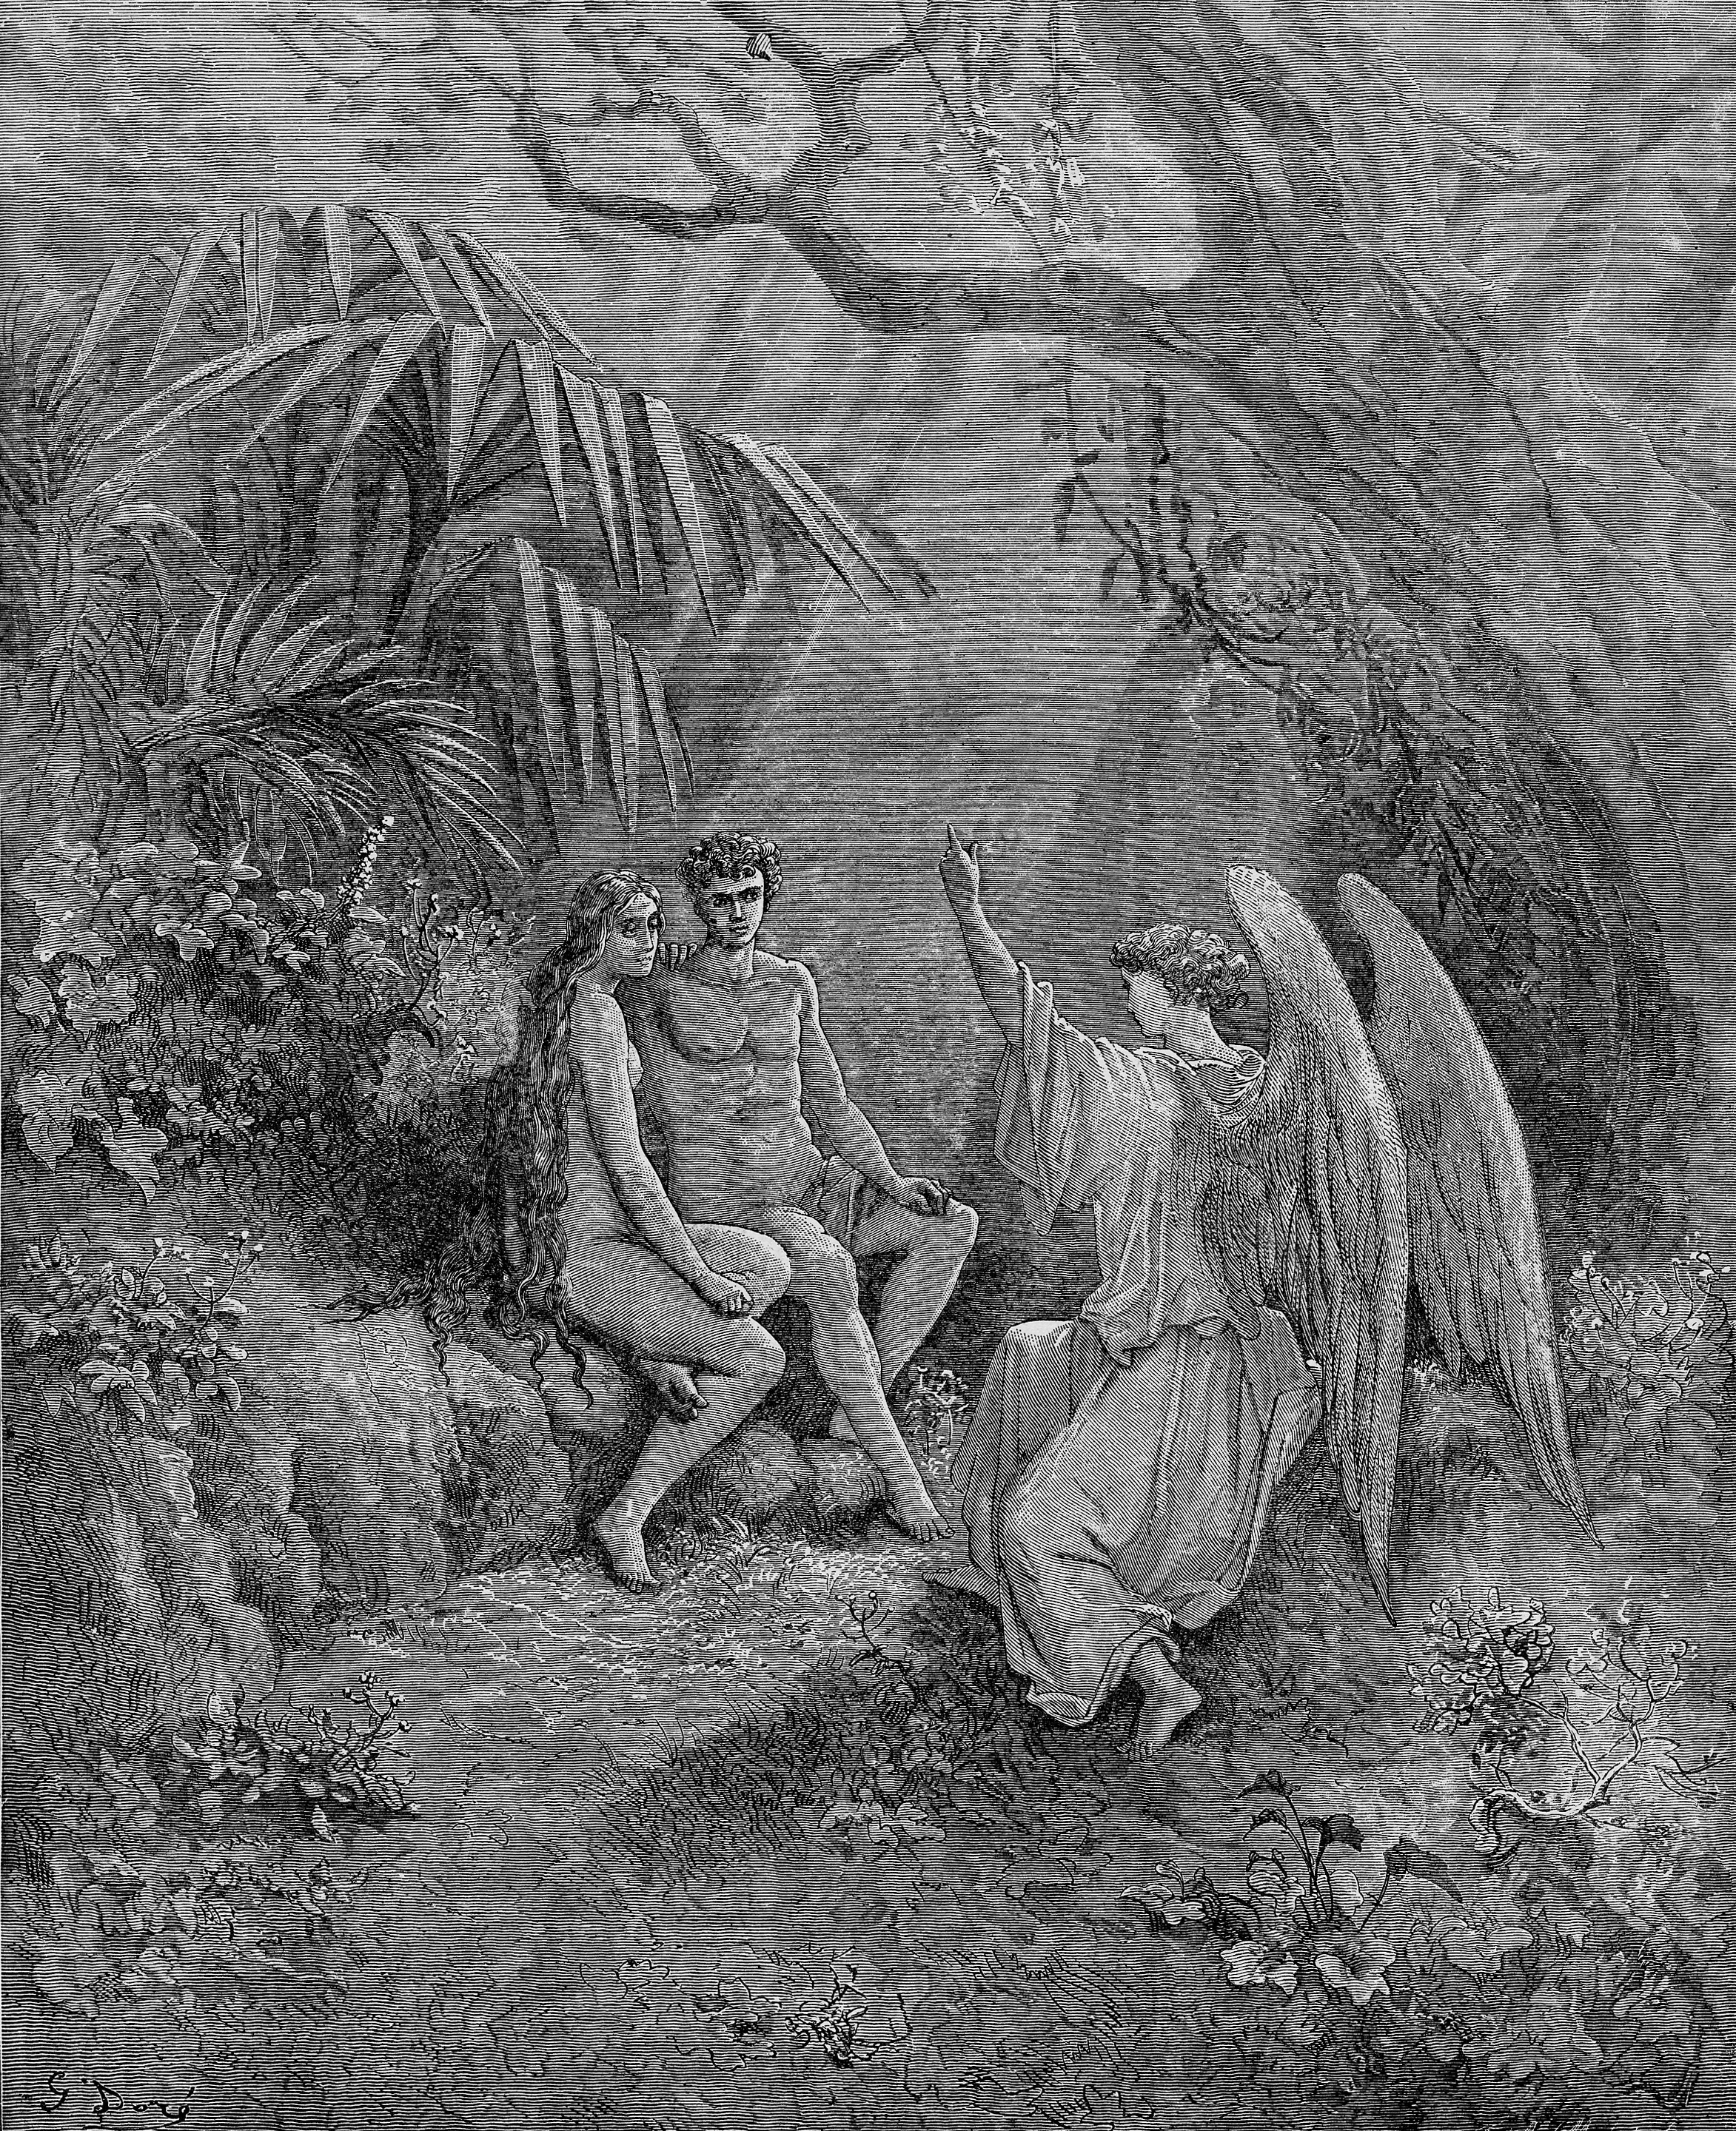 a comparison of good versus evil in paradise lost by john milton That all this good of evil  paradise lost, by john milton describes the temptation of humankind and their eventual fall from paradise in the poem, milton.